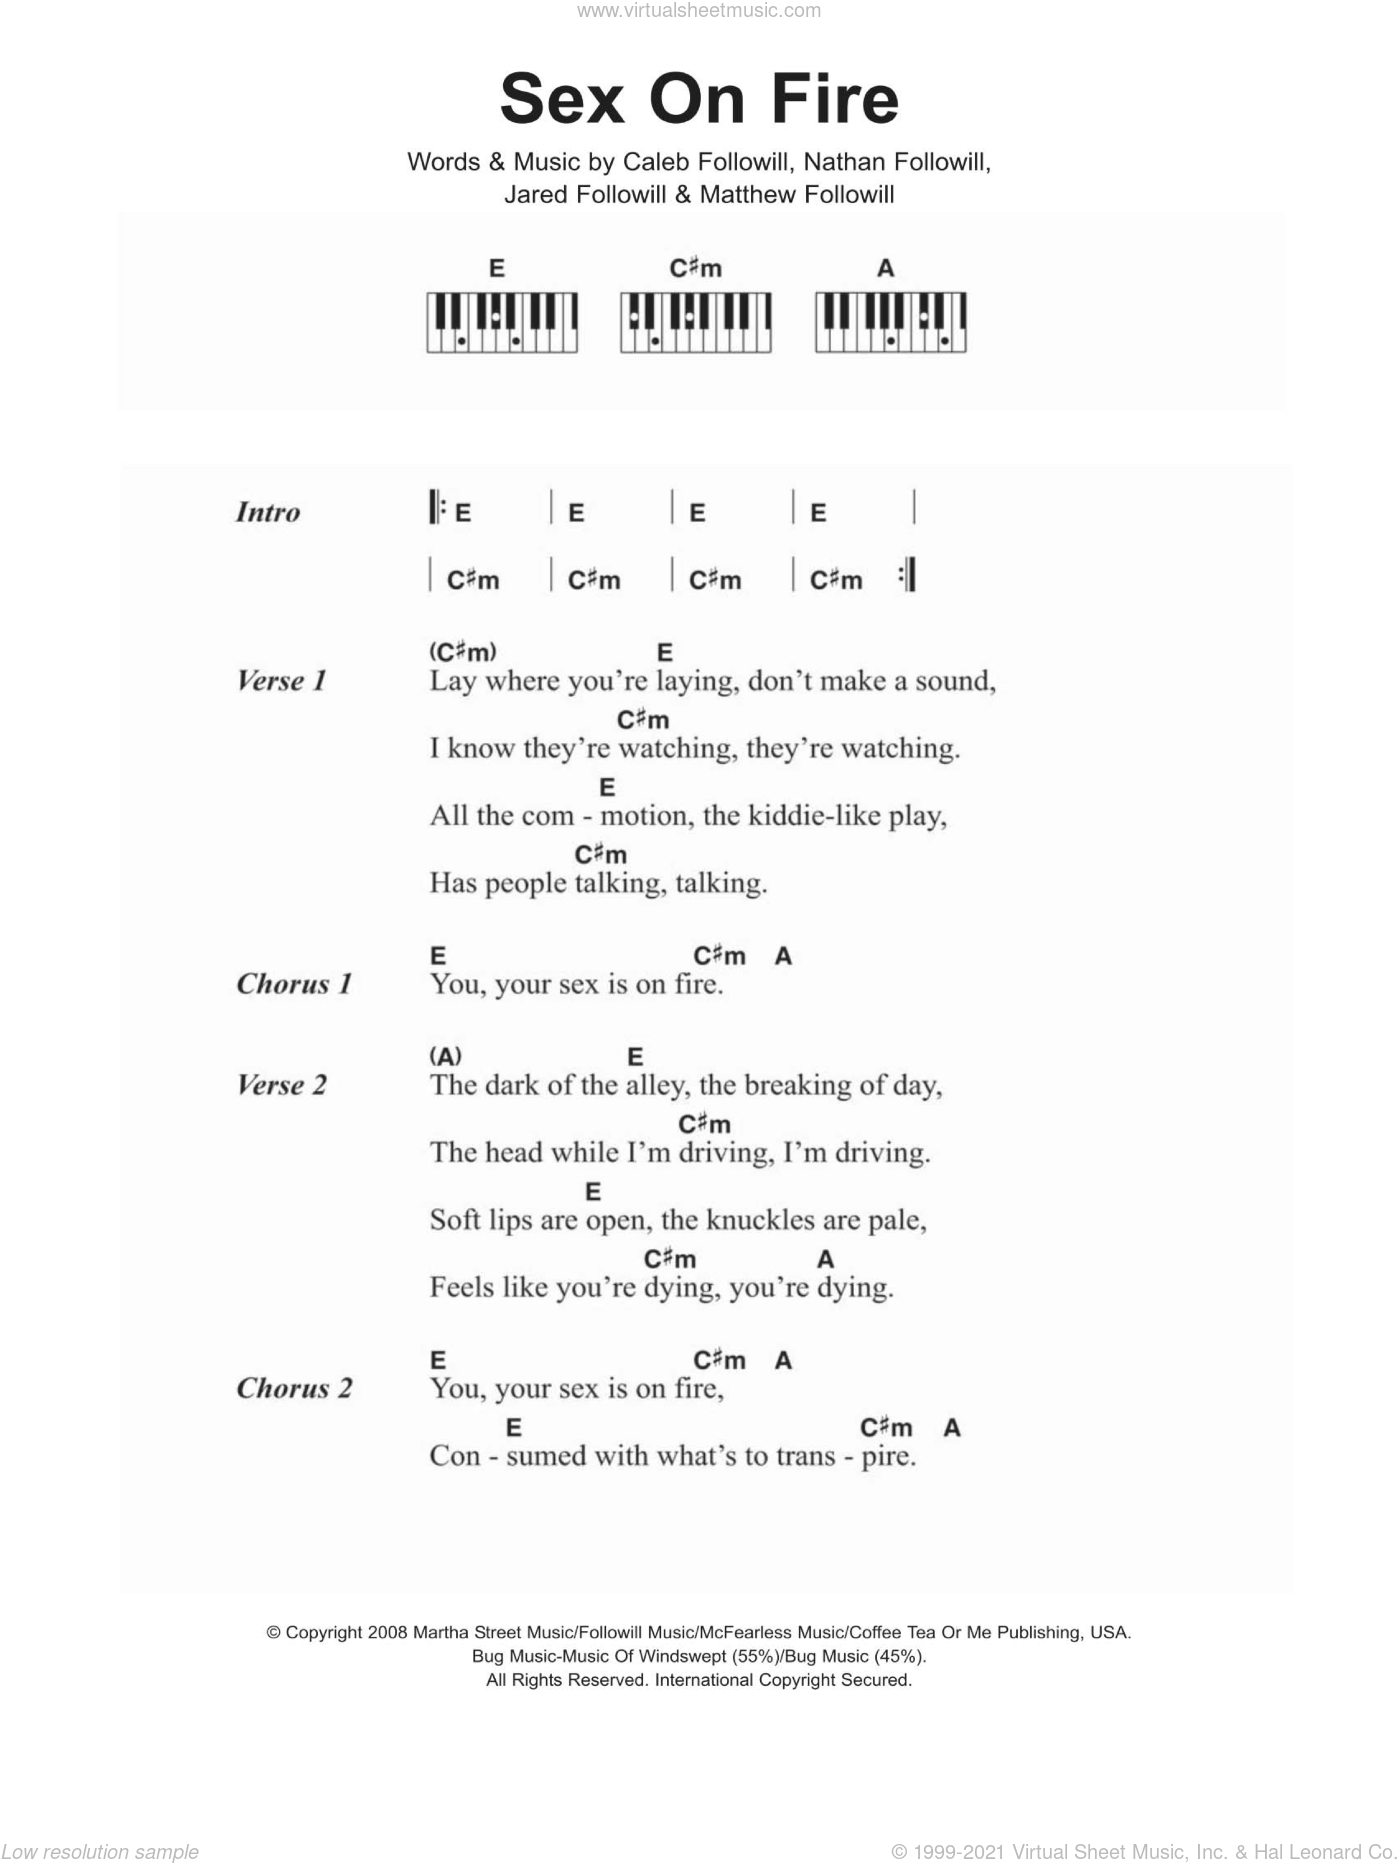 Sex On Fire sheet music for piano solo (chords, lyrics, melody) by Nathan Followill